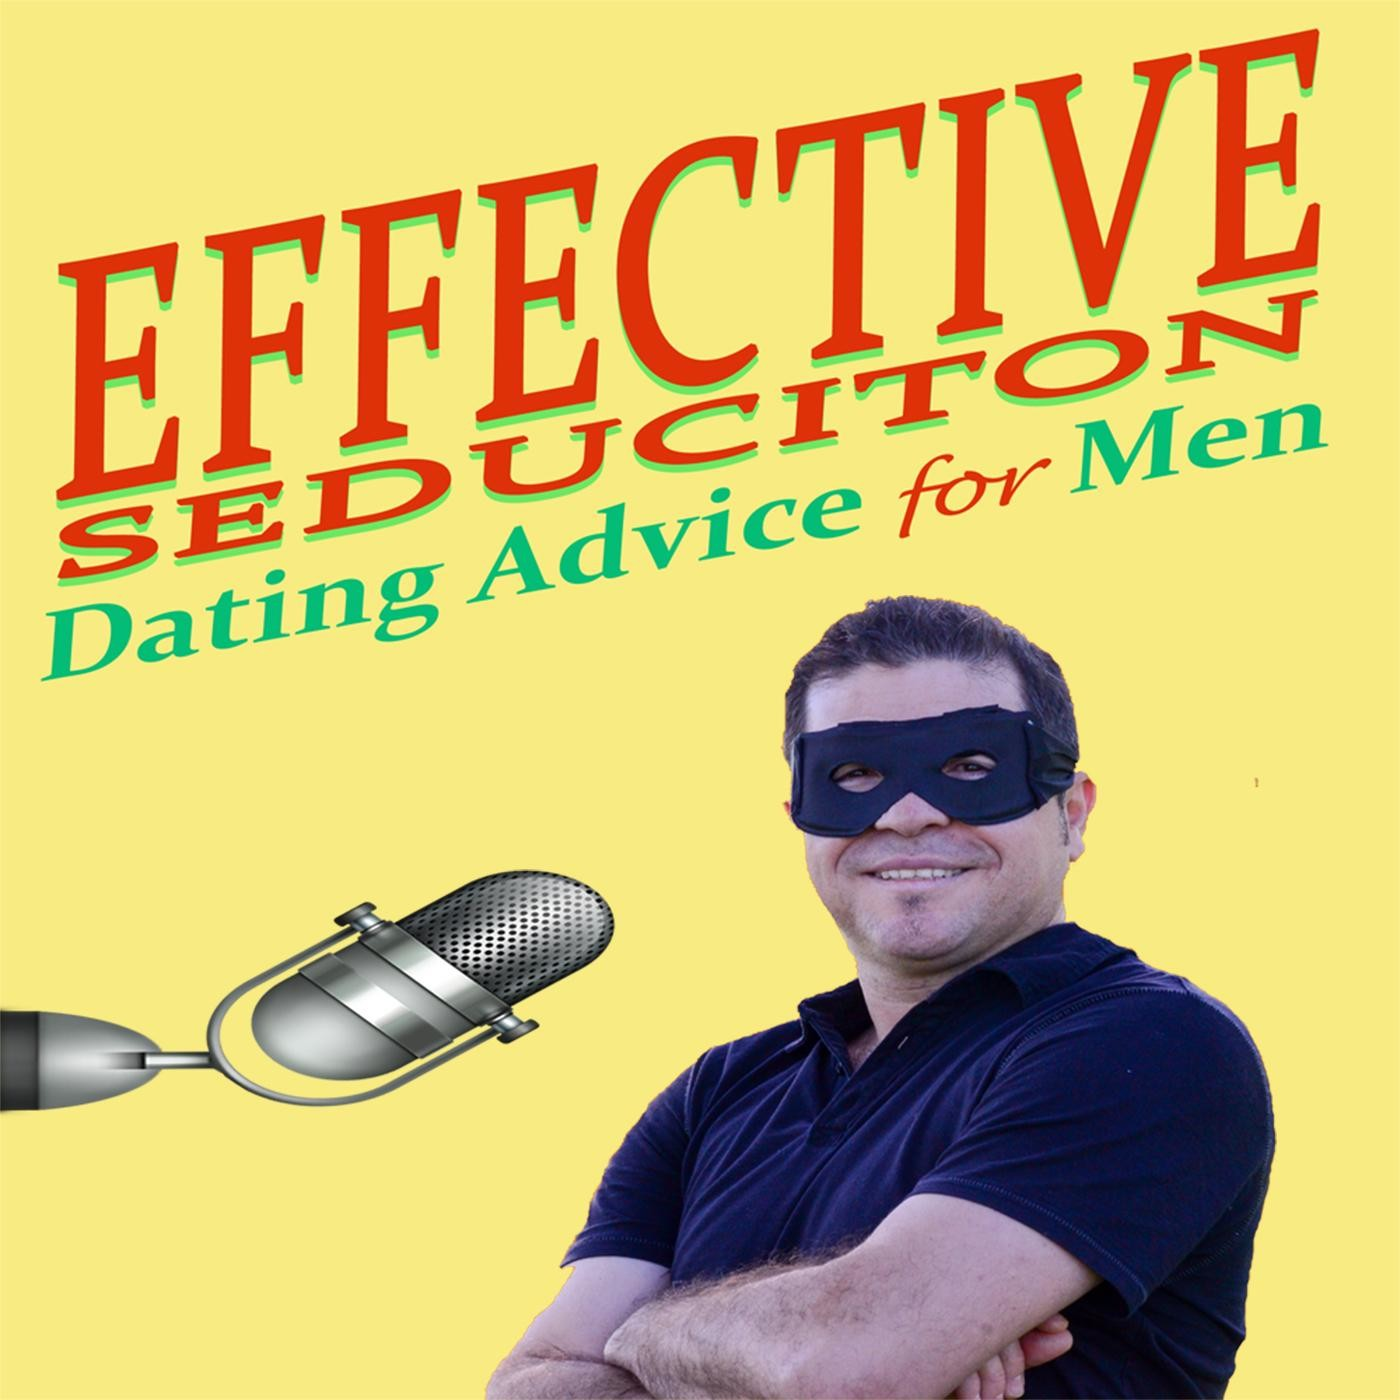 <![CDATA[Effective Seduction, Dating advice for men]]>